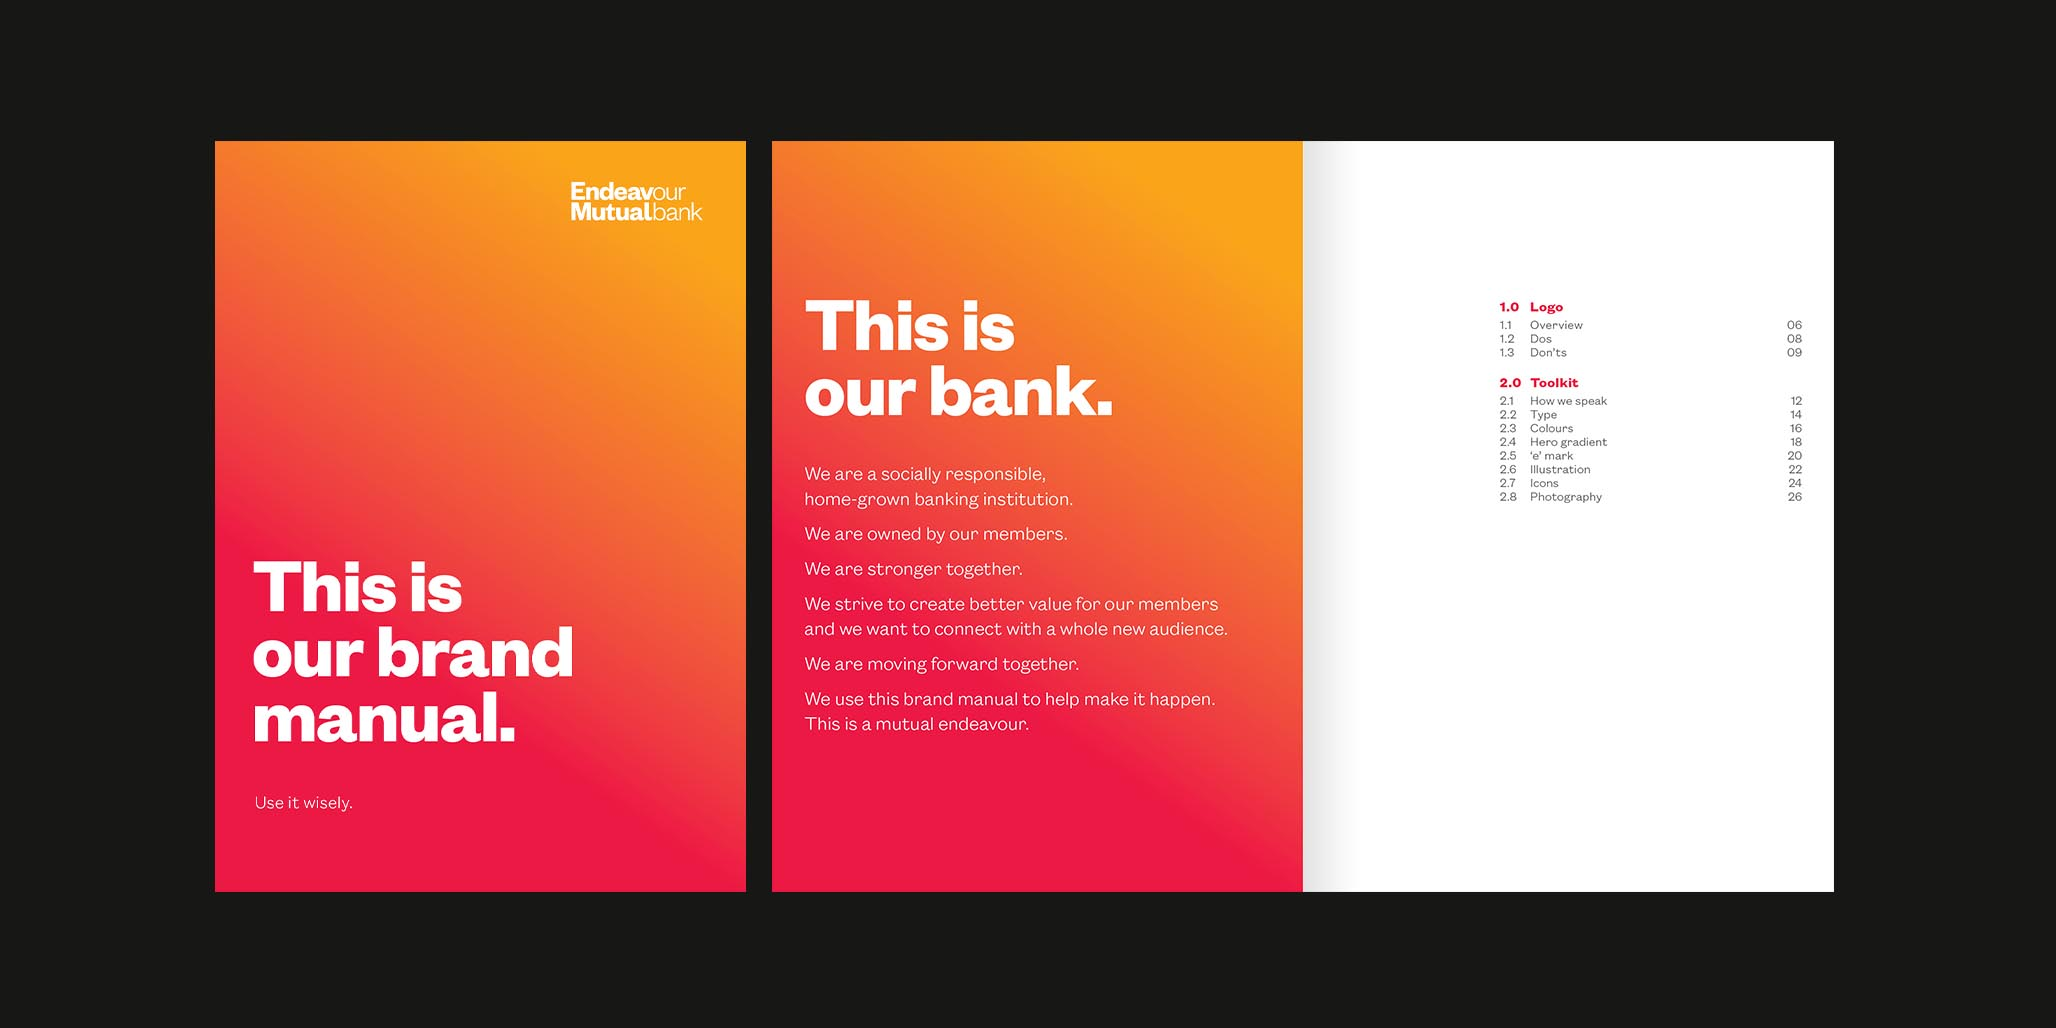 Rebranding, Brand Identity Design & Roll-out project for financial services company, Endeavour Mutual Bank, Sydney, Australia, image E